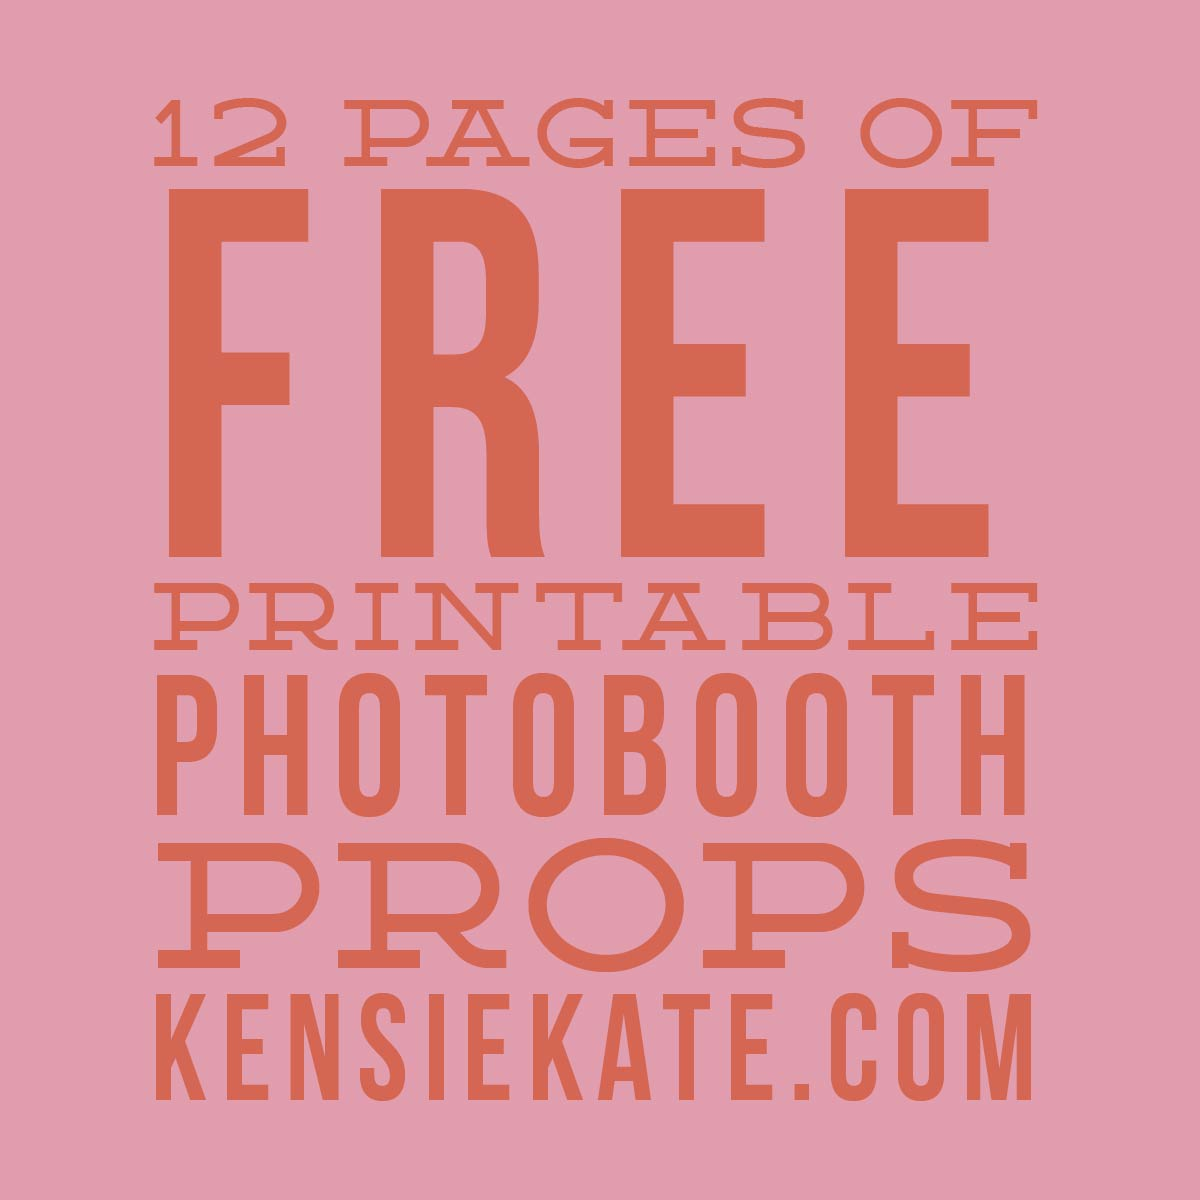 12 pages of free print...